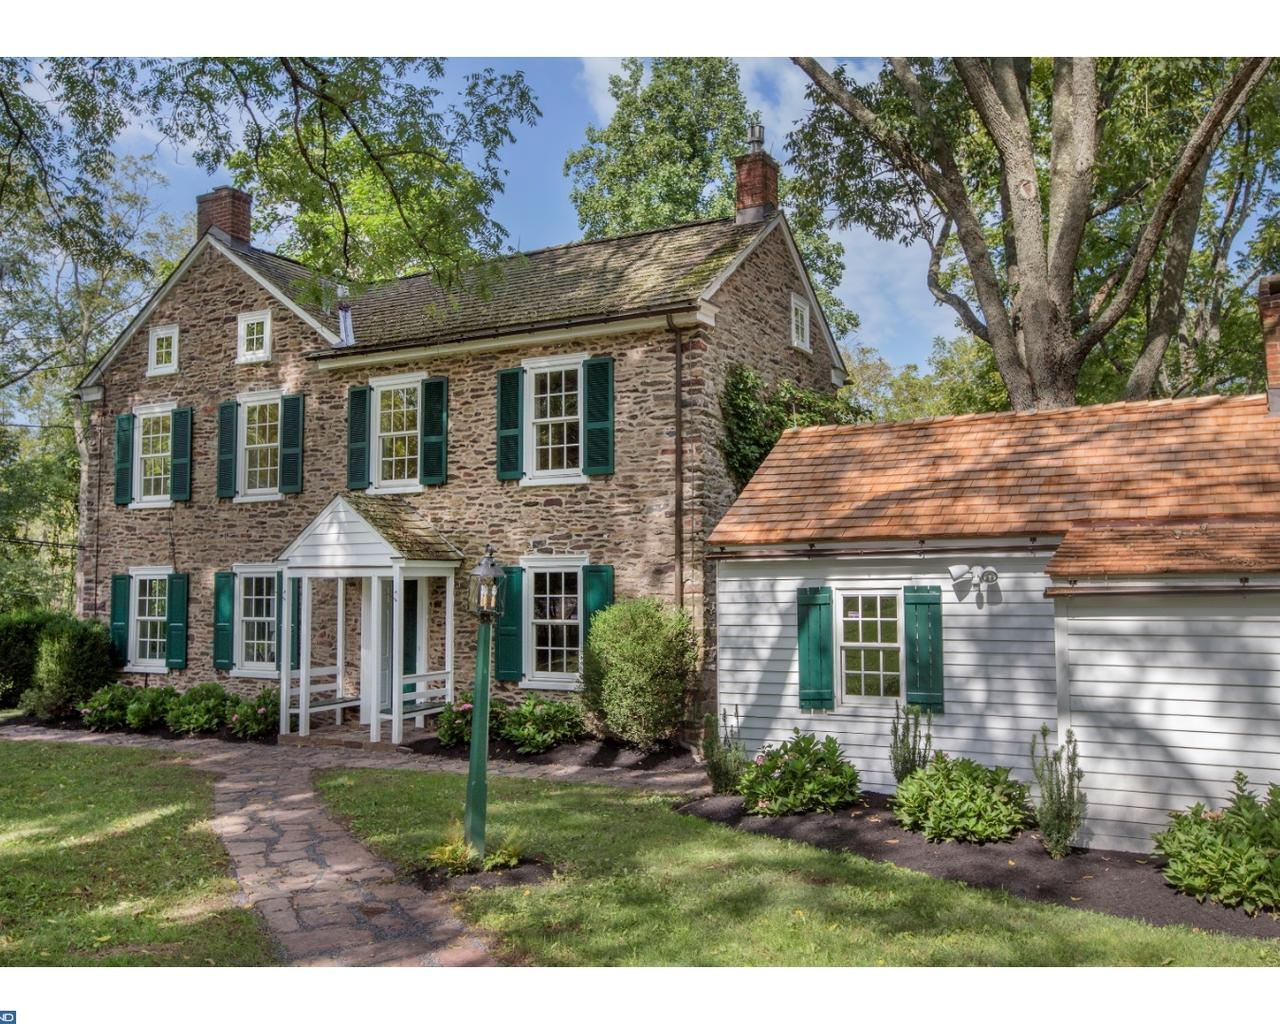 cozy homes for sale in greater philadelphia everyhome realtors